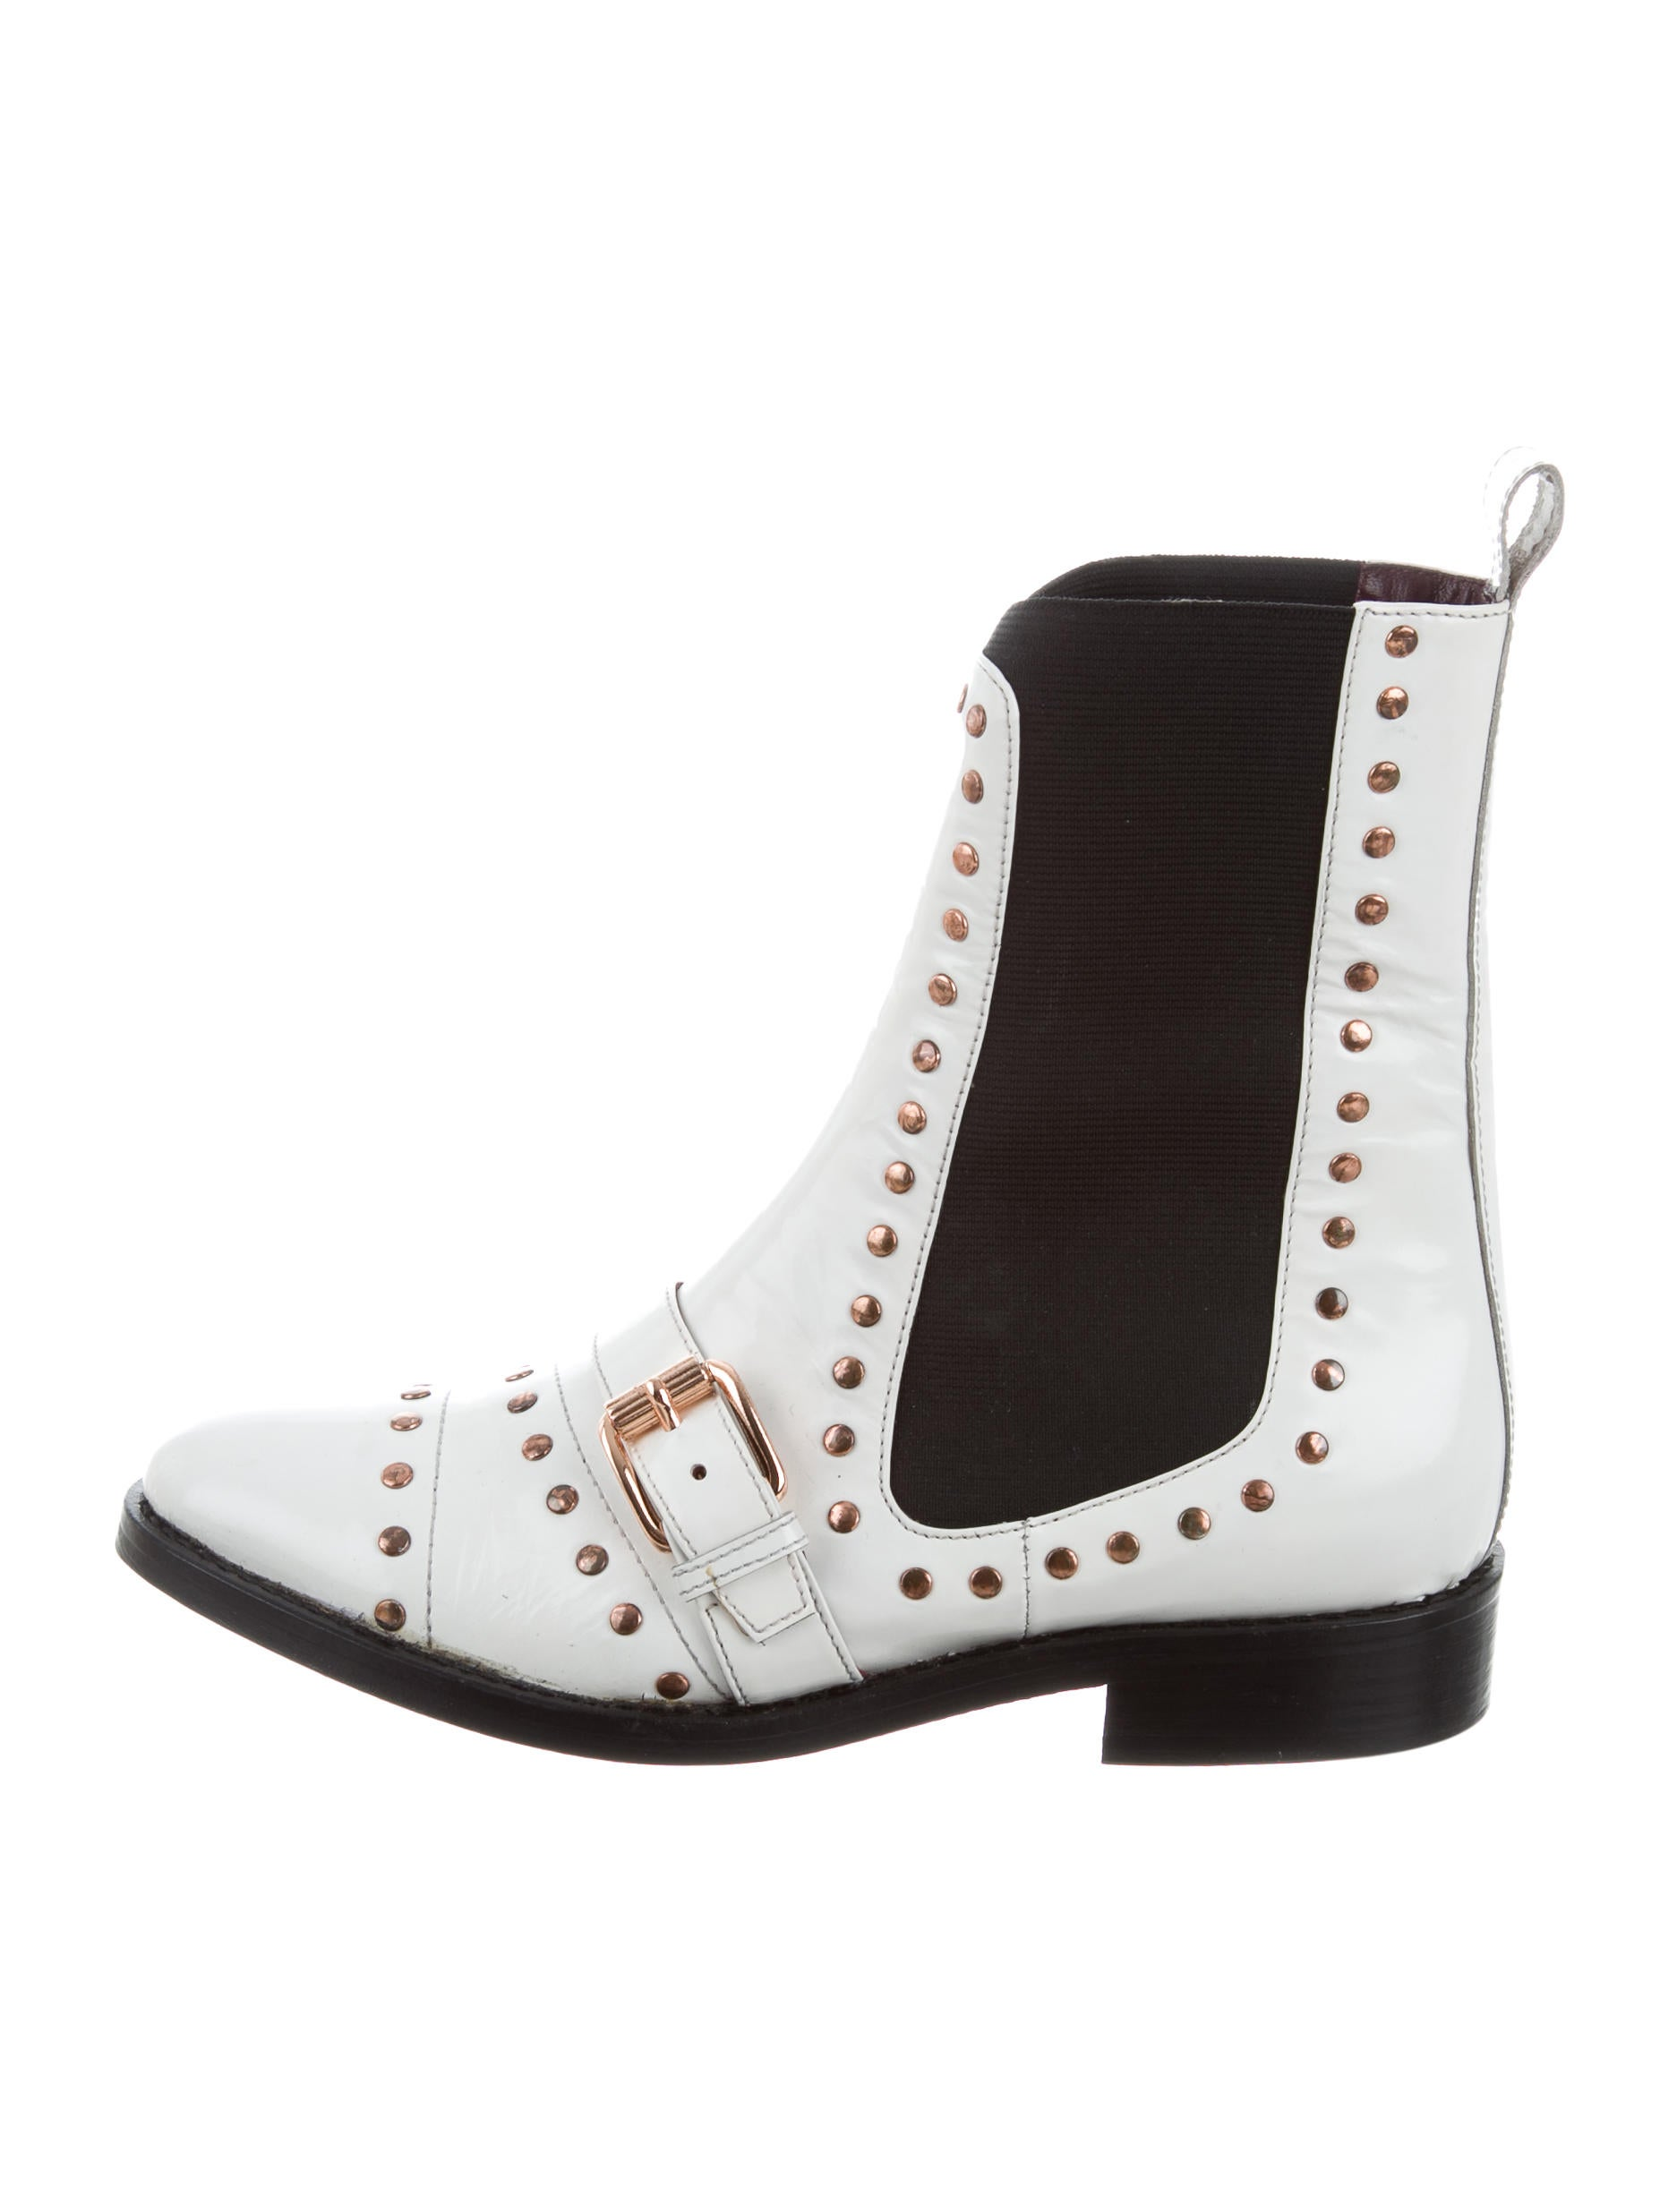 from china sale with mastercard Opening Ceremony Studded Ankle Boots VrZ6lry